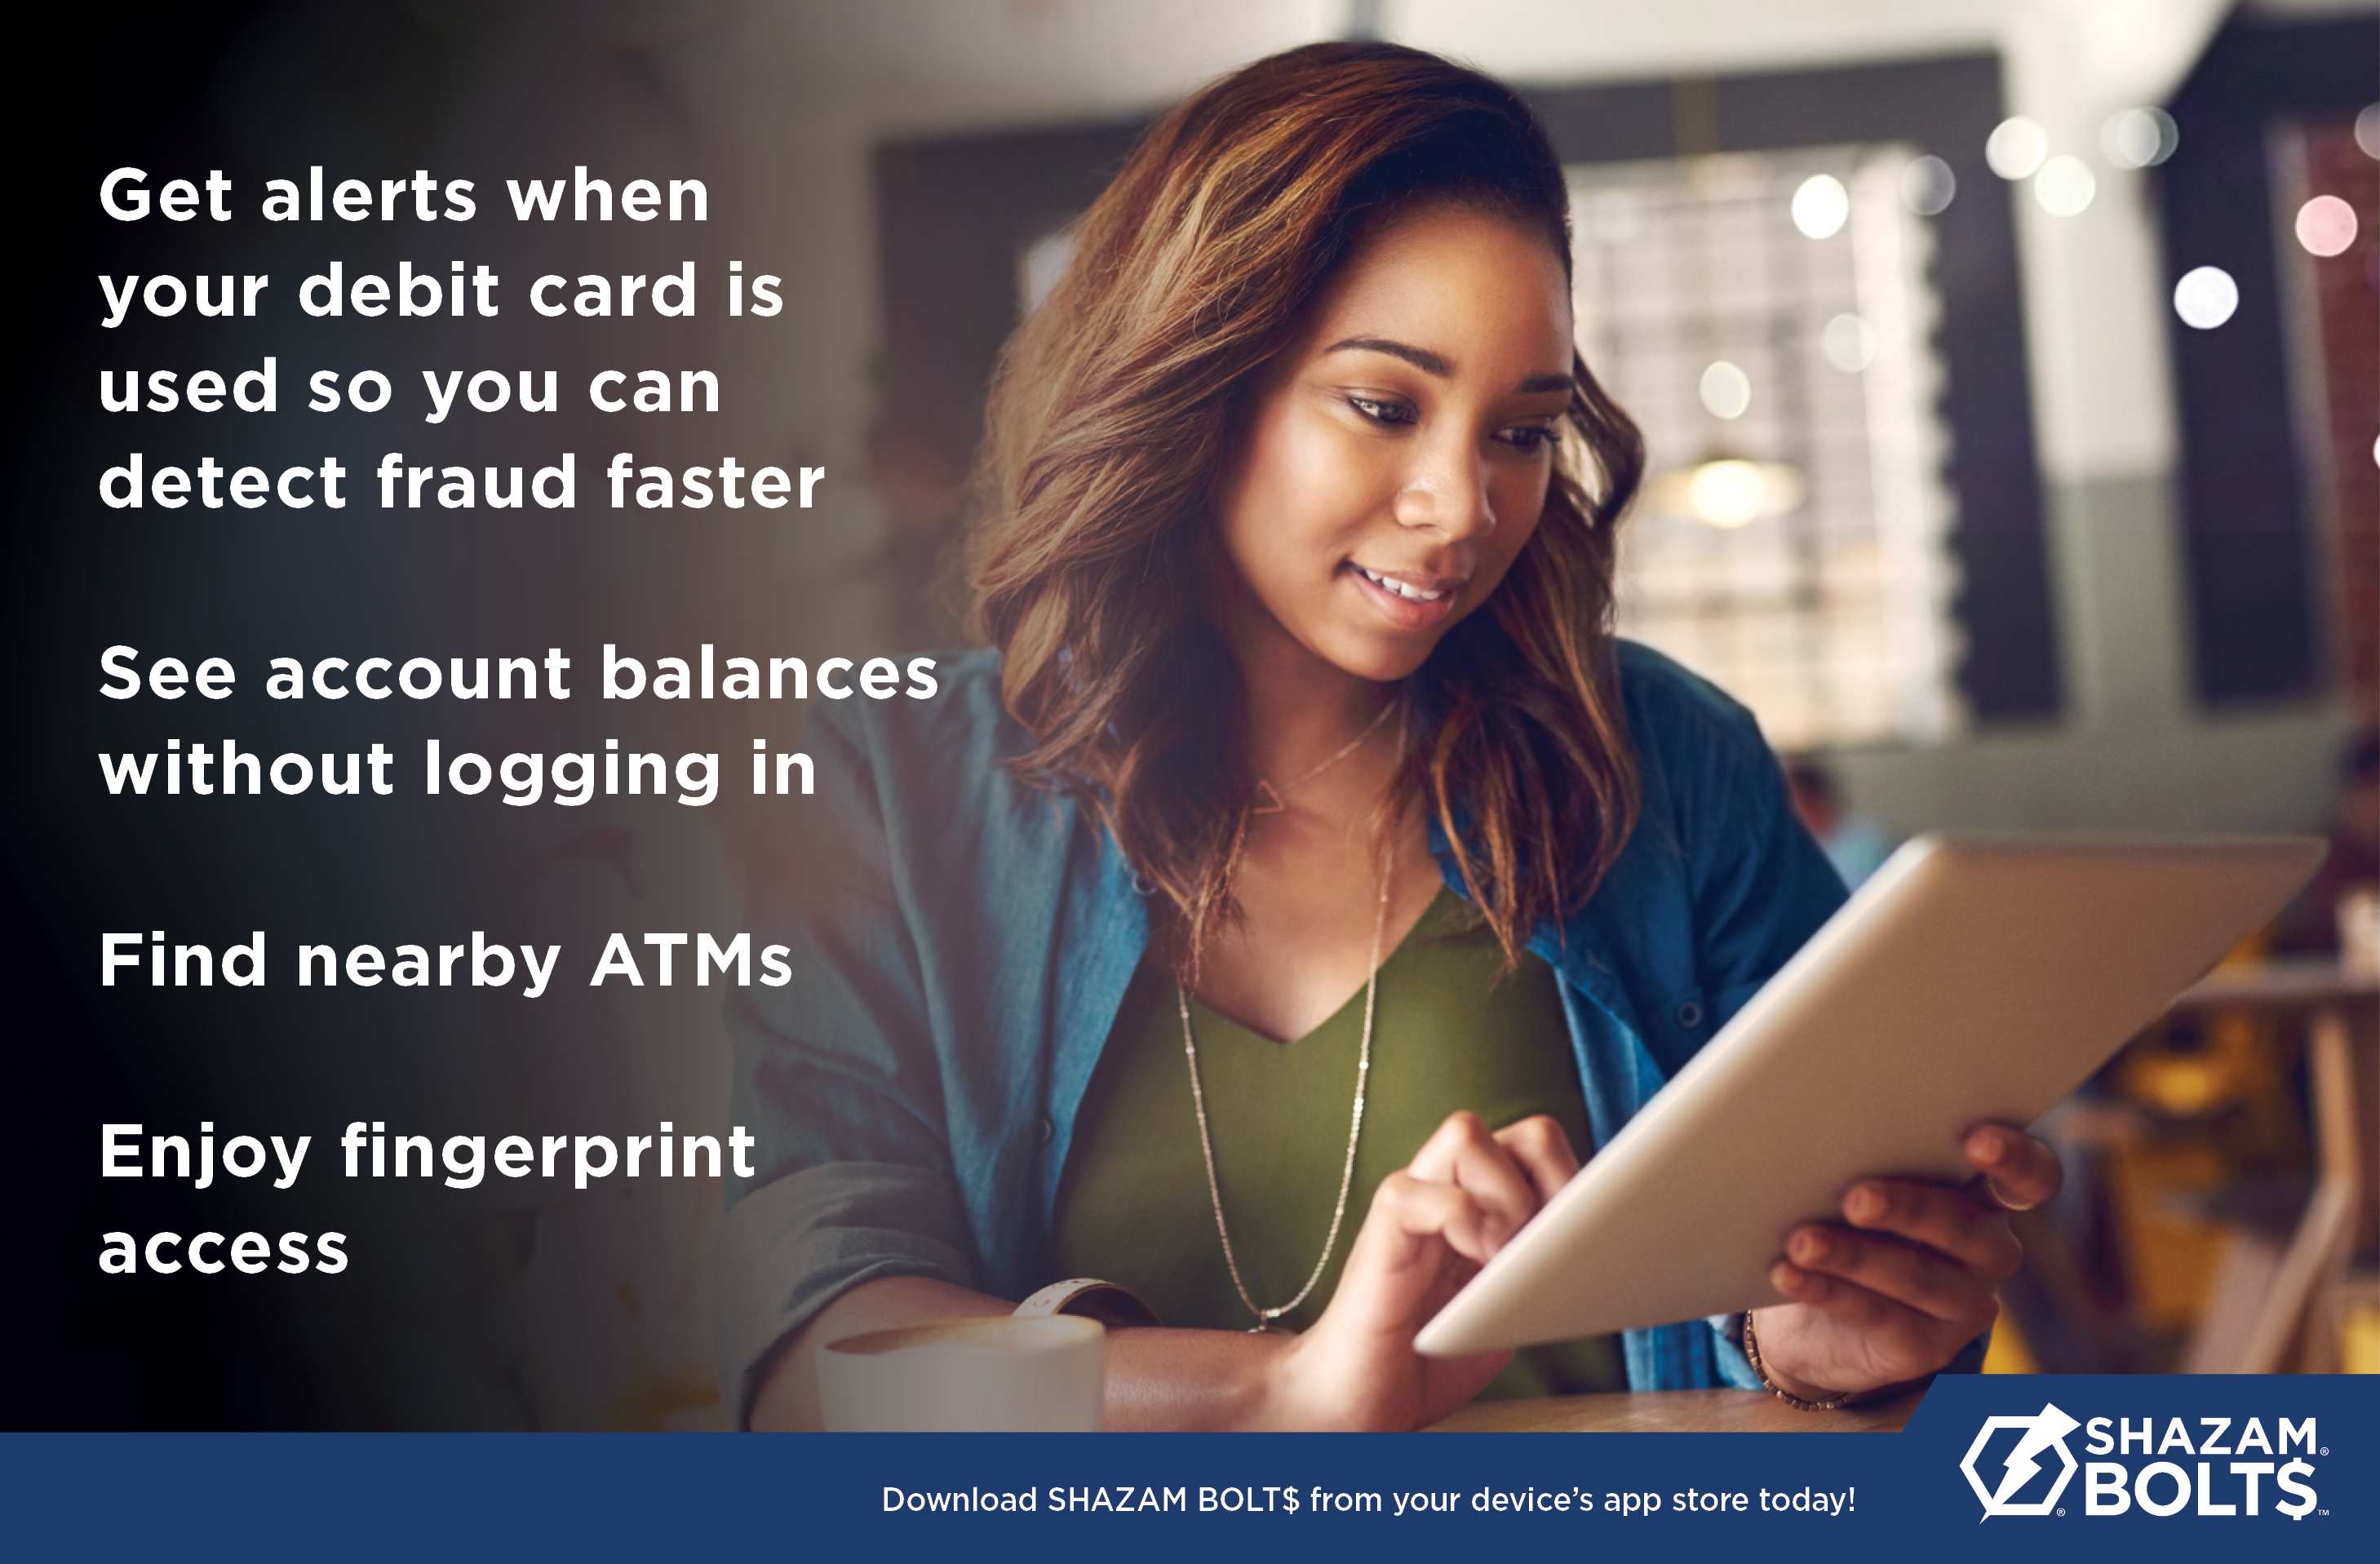 ... balance information anytime, anywhere via your smartphone or the Internet. It also adds another layer of protection to your debit card. SHAZAM BOLT$ can ...